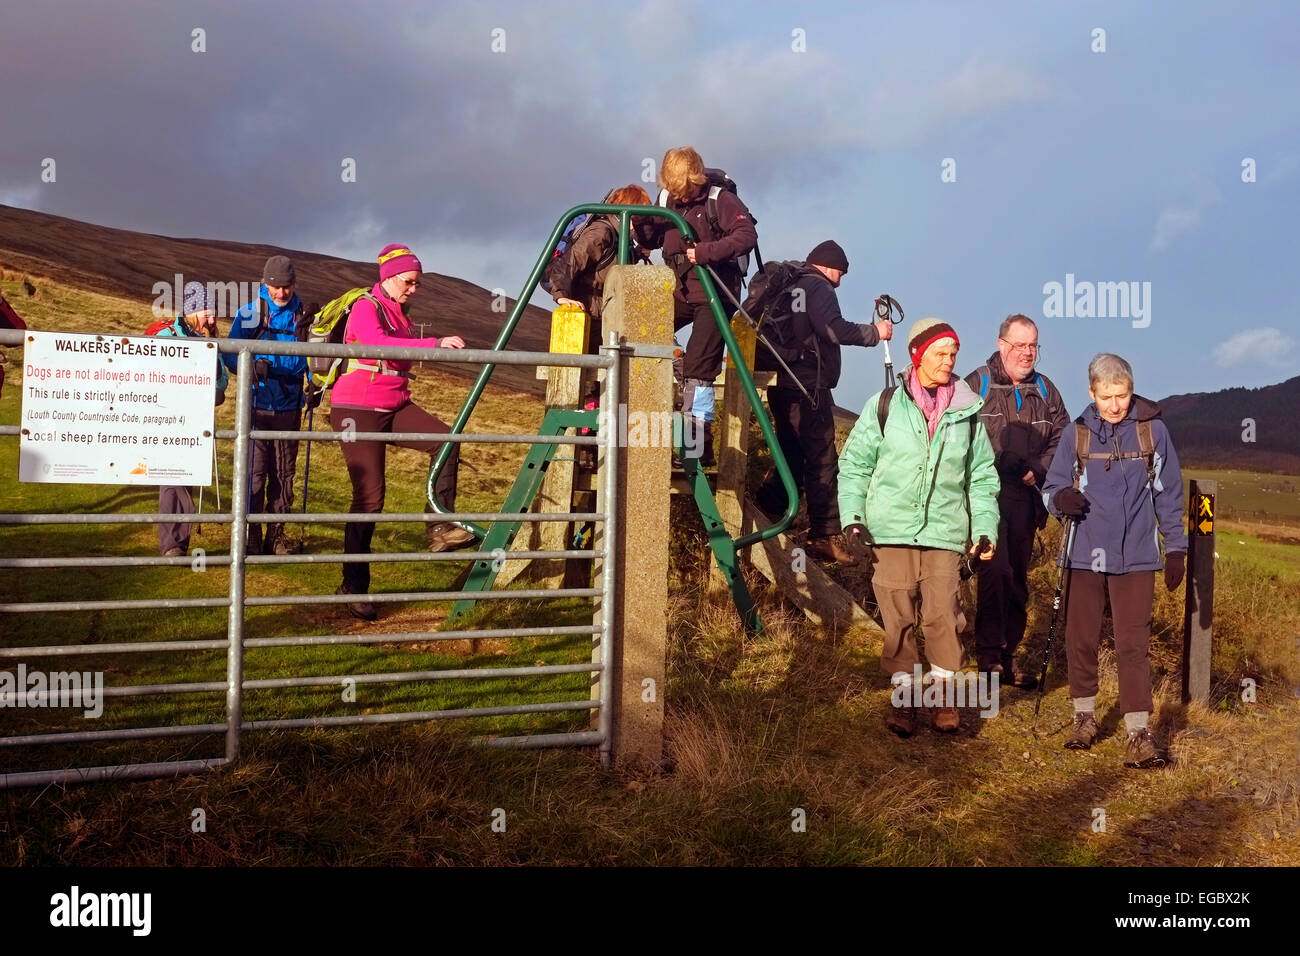 Hill walkers climbing a stile on the Tain Trail in the Cooley Mountains in Carlingford Co. Louth Ireland - Stock Image